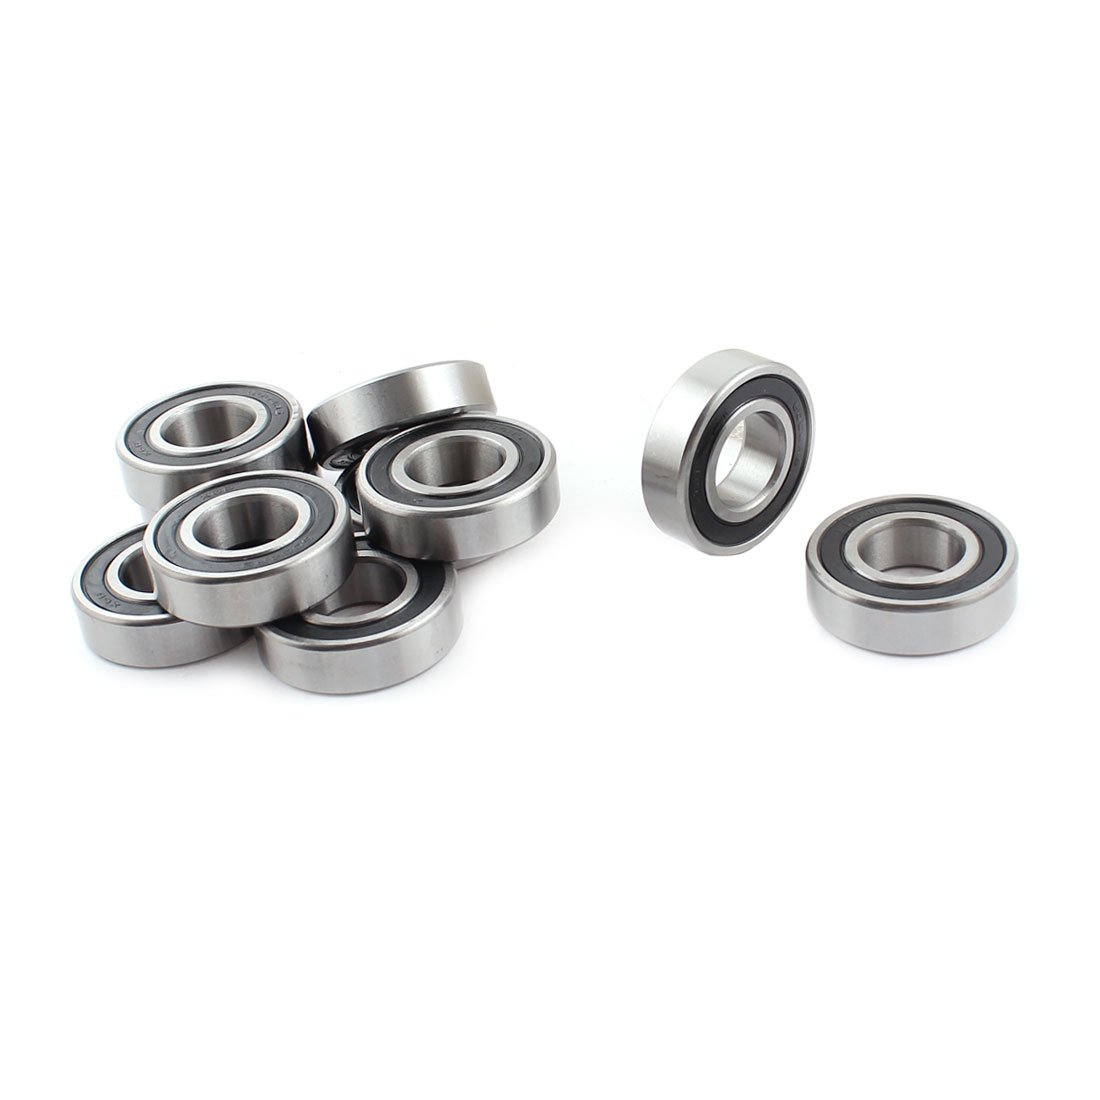 sourcingmap® 10 x 6004RS Shielded Deep Groove Radial Ball Bearings 20mmx42mmx12mm a14111200ux0486